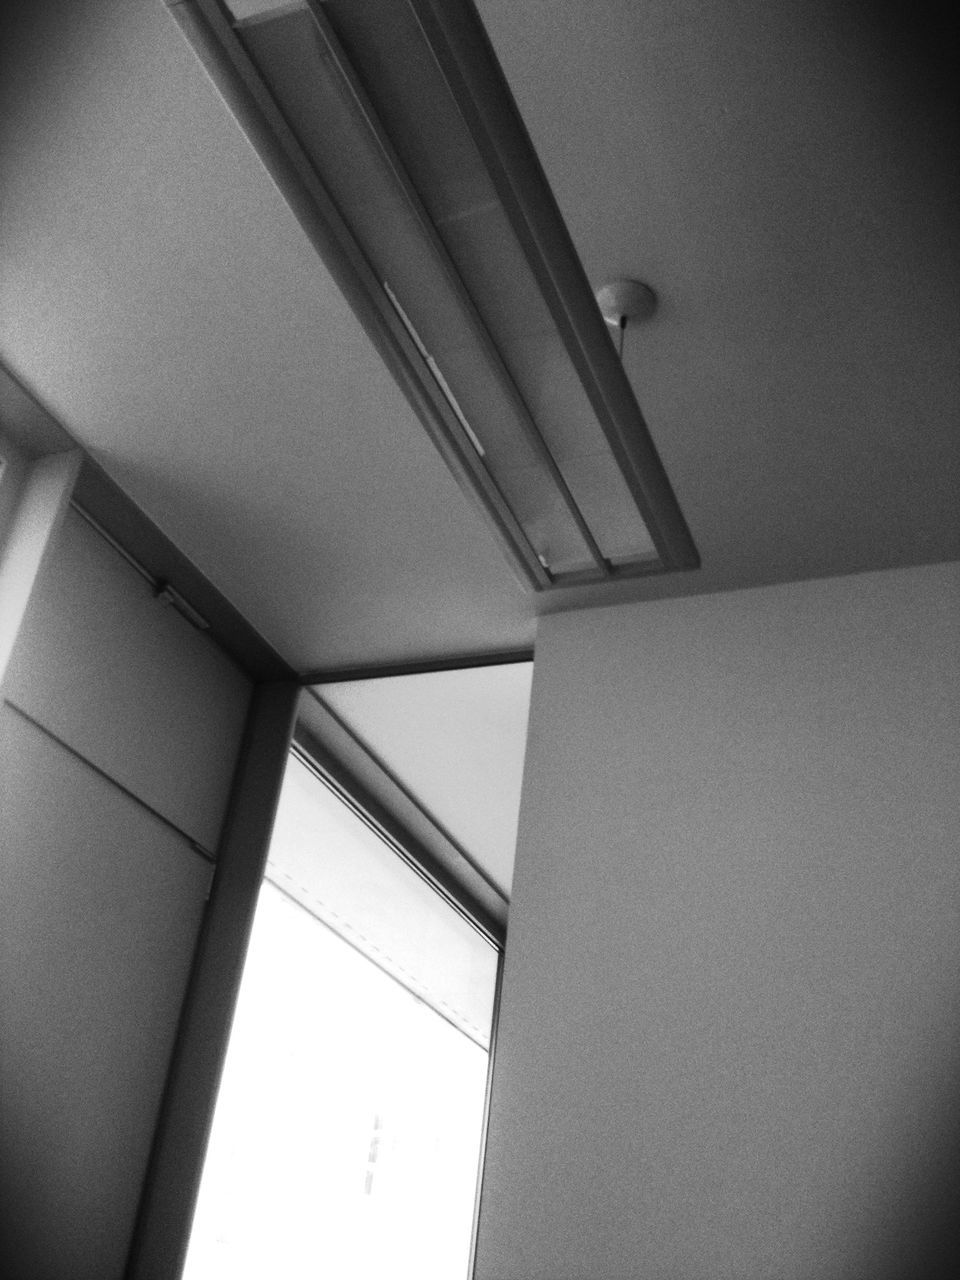 ceiling, indoors, low angle view, architecture, built structure, no people, day, close-up